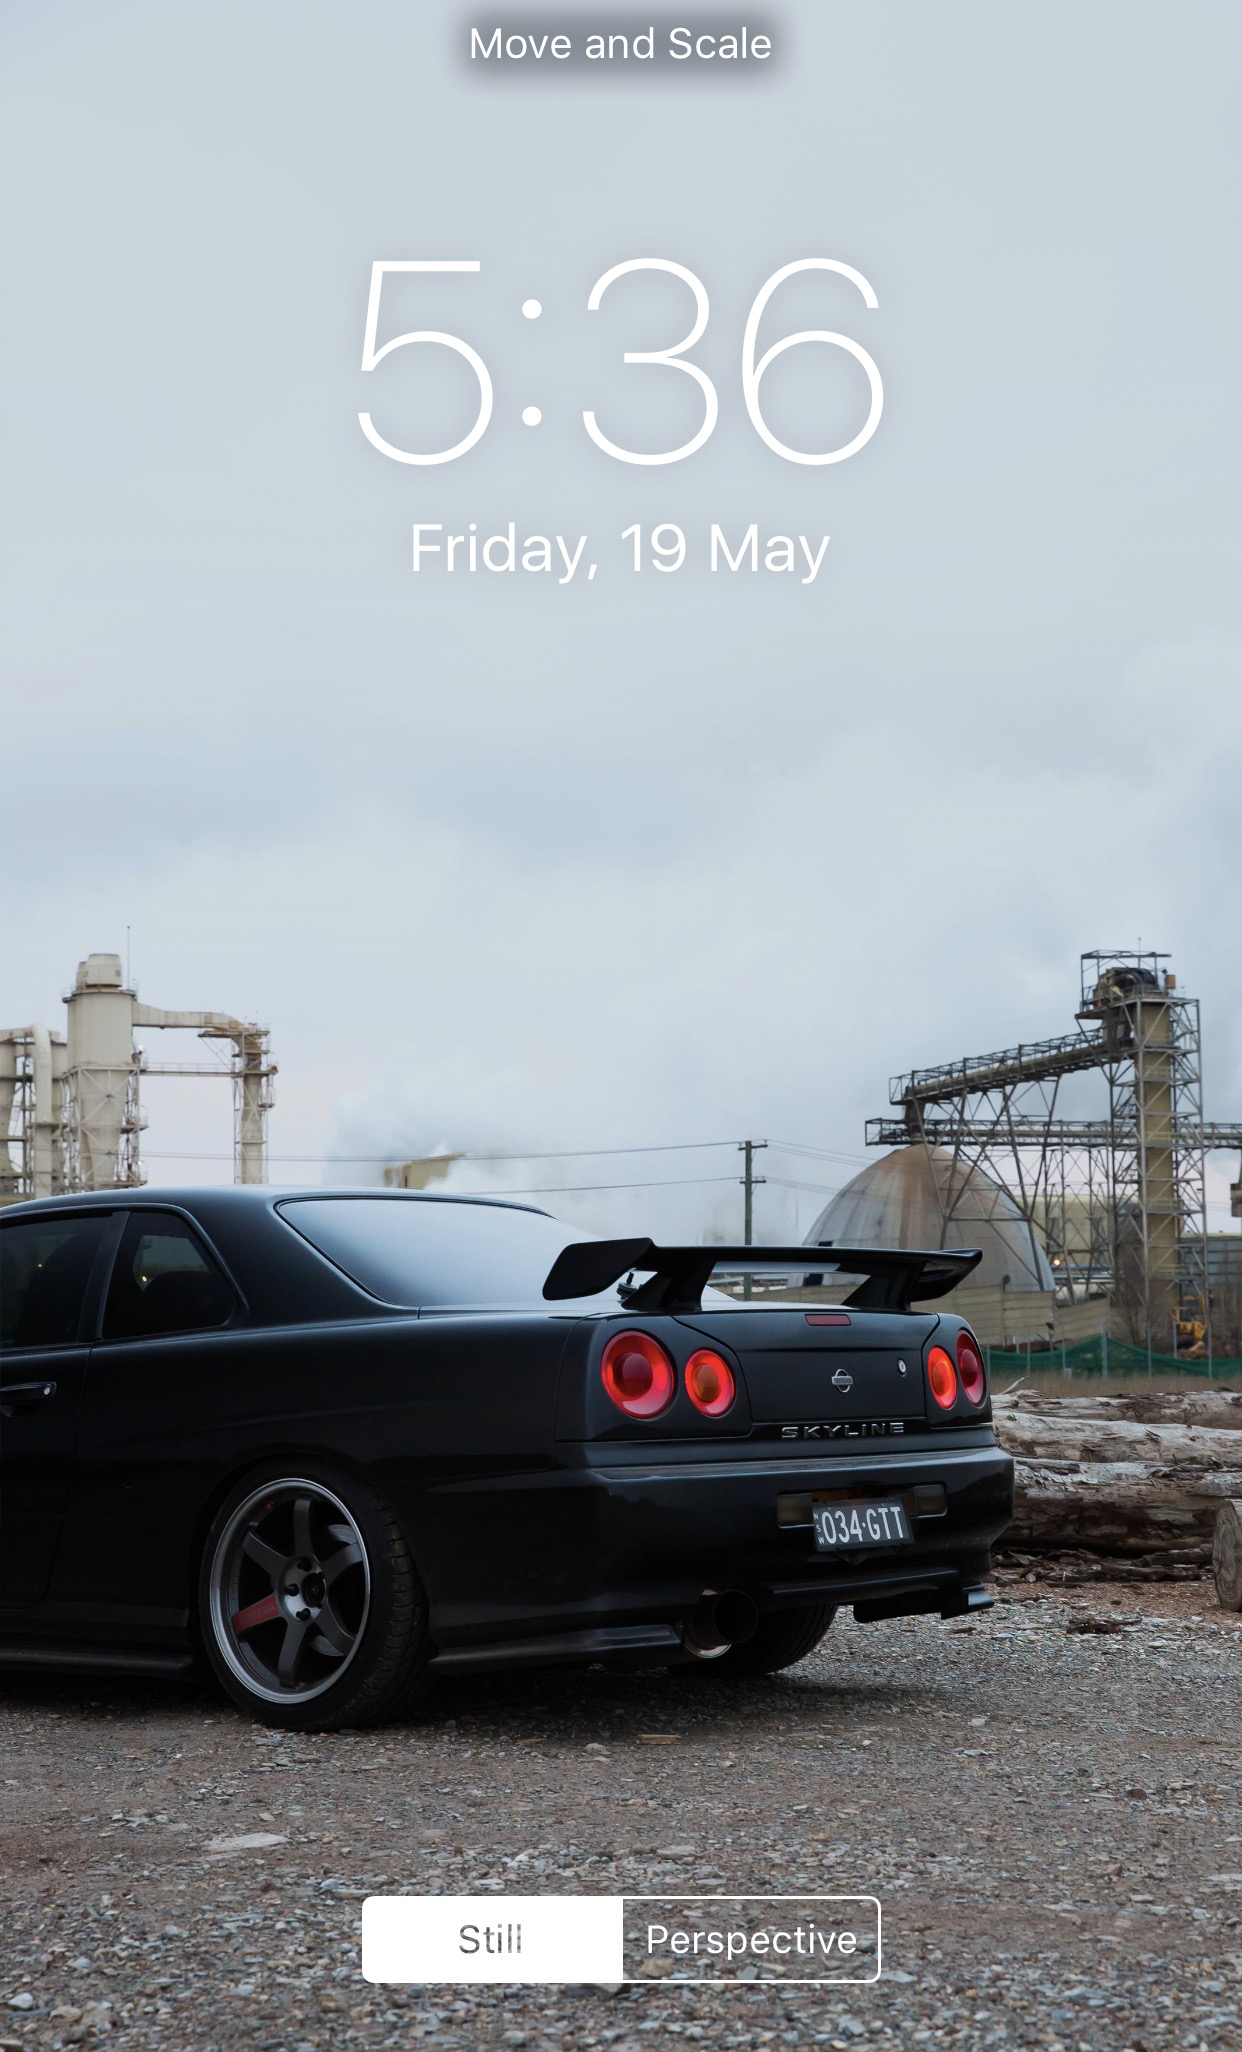 Free r34 phone wallpapers stay driven free r34 phone wallpapers voltagebd Choice Image